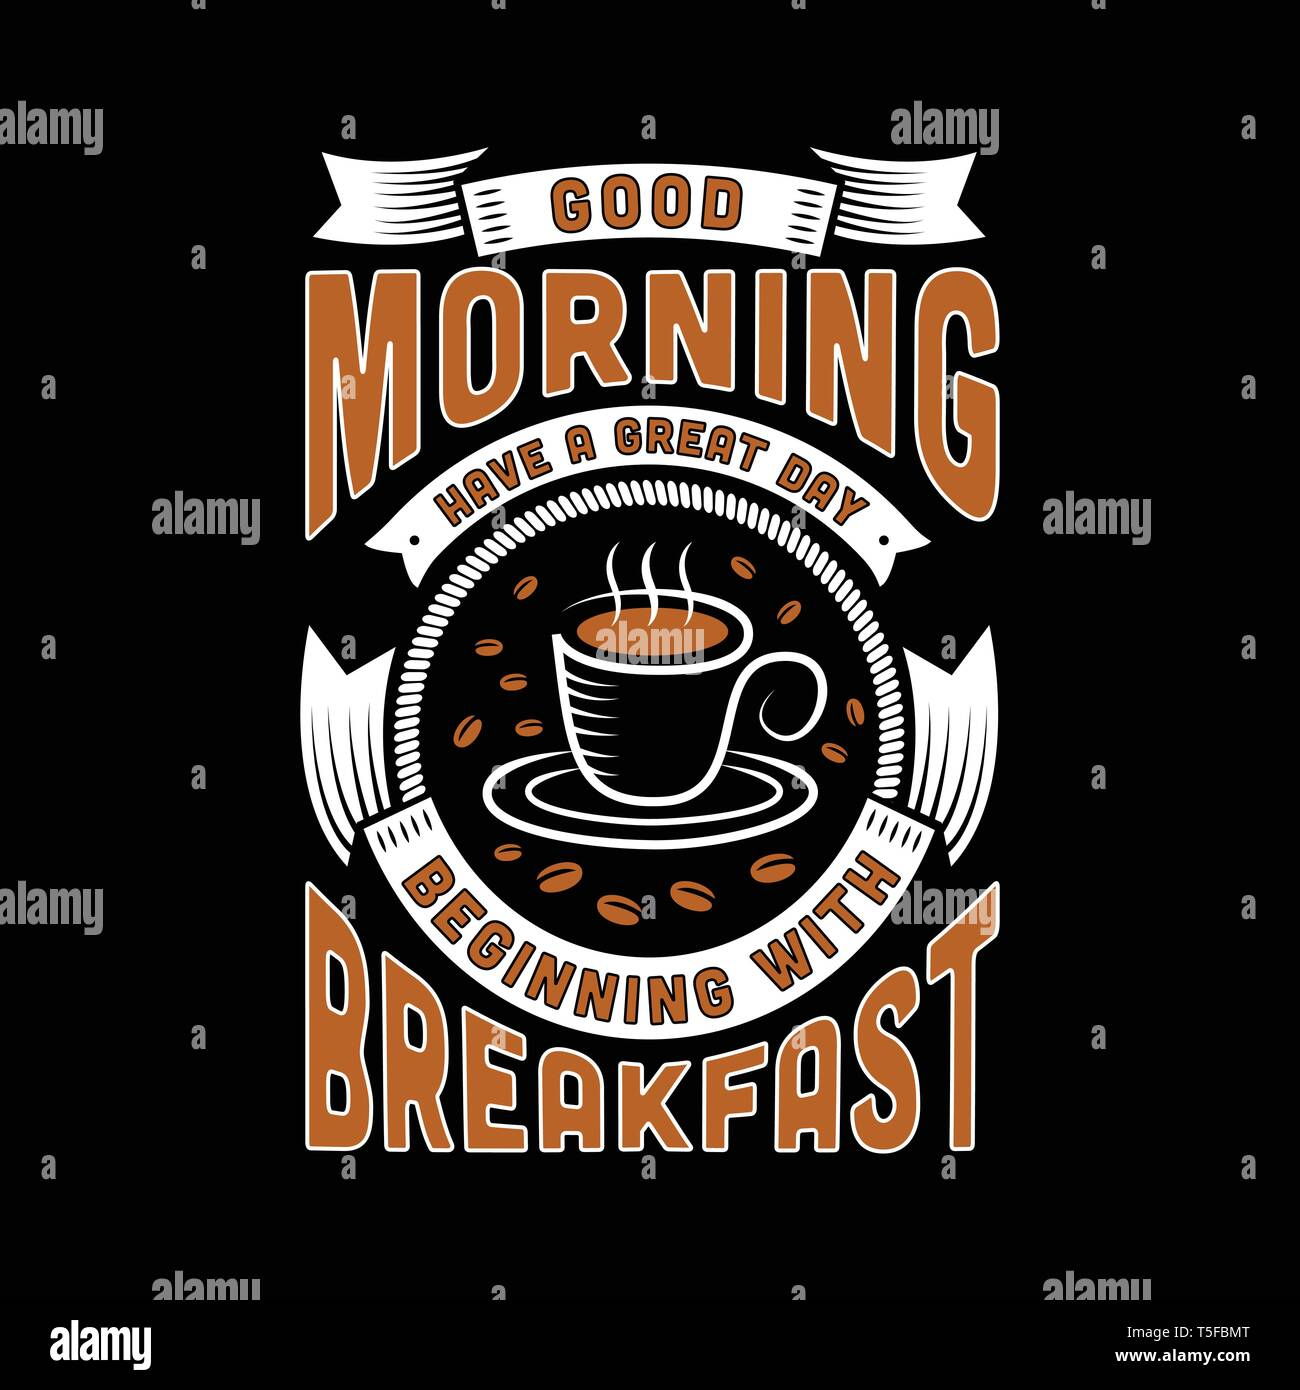 Coffee Quote And Saying Good Morning Have A Great Day Beginning With Breakfast Stock Vector Image Art Alamy